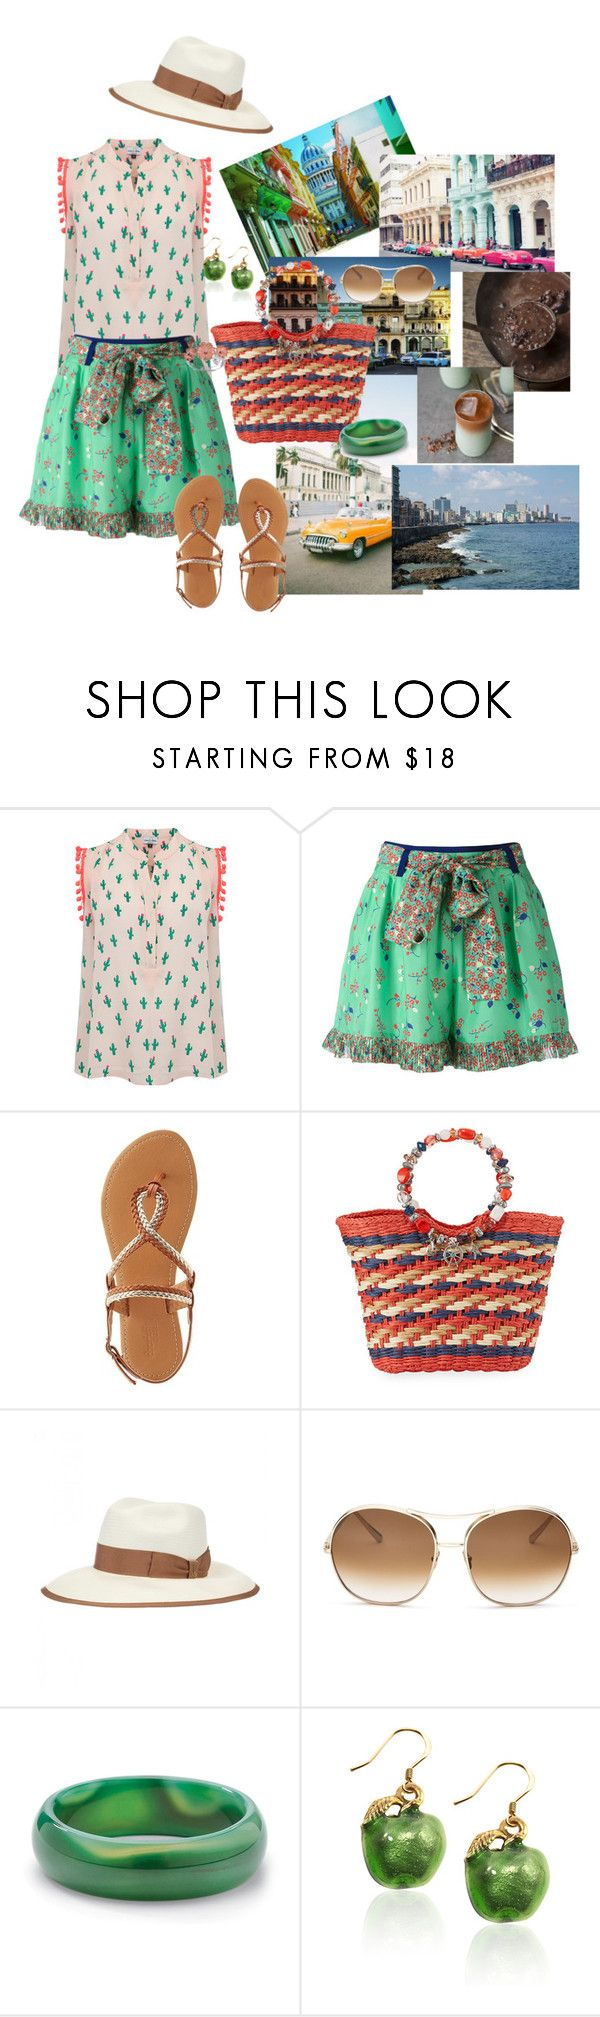 """""""havana"""" by marlenewelke ❤ liked on Polyvore featuring Mercy Delta, Manoush, Charlotte Russe, Cappelli Straworld, Gucci, Chloé, Palm Beach Jewelry and Miadora"""